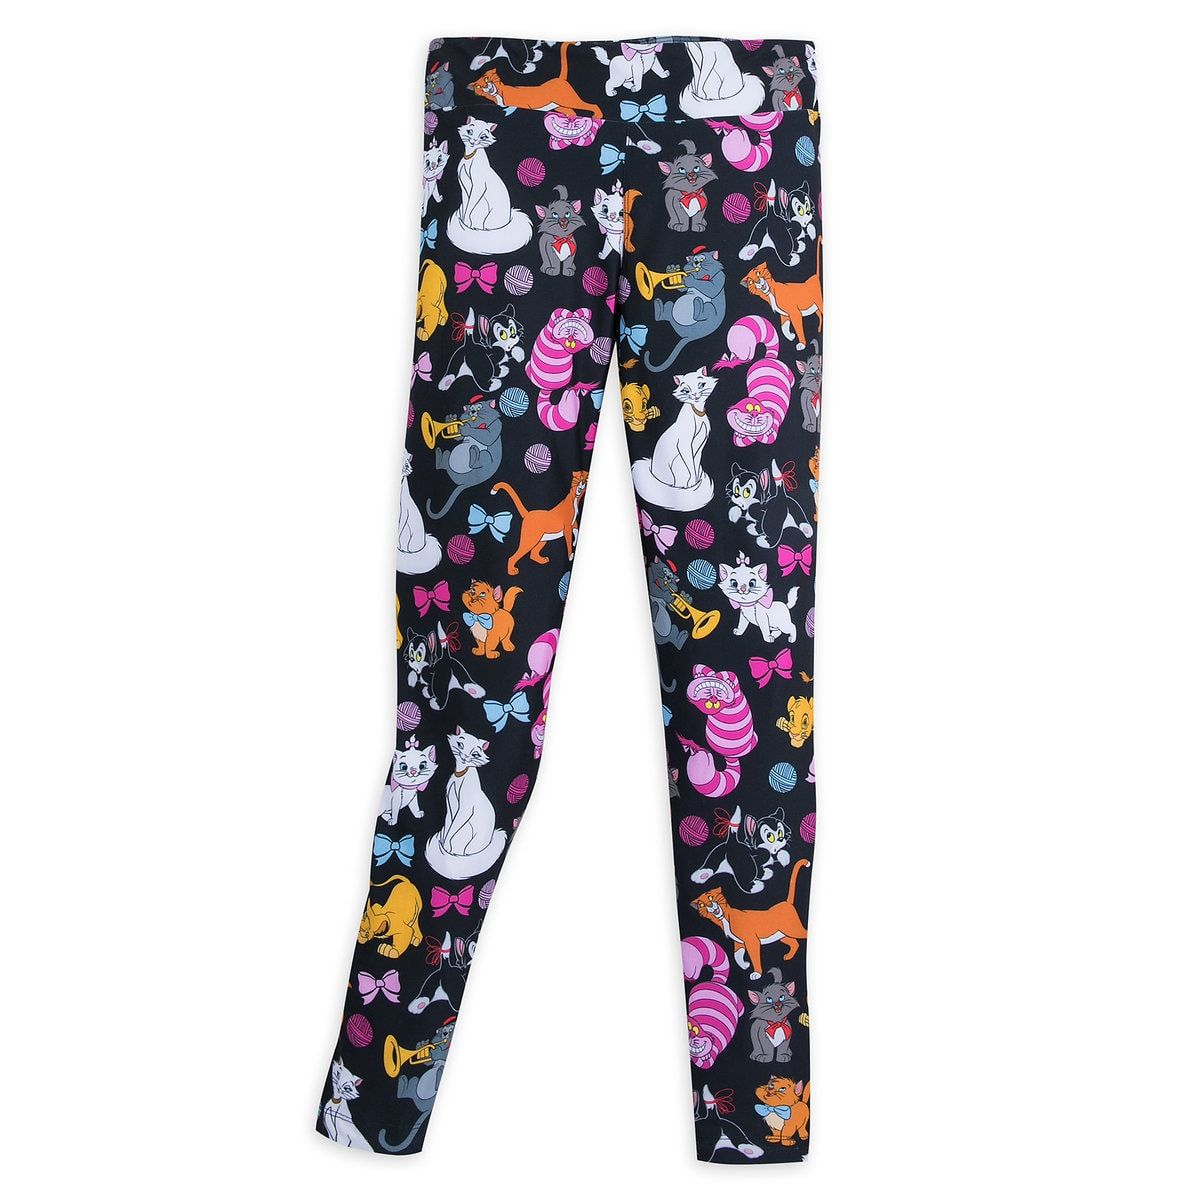 04ff306ee50d1 Lose your legging Evan? Hahahaha just kidding but if you were a girl I  could see you wearing these haha | My followers! | Leggings, Cat leggings,  Fashion